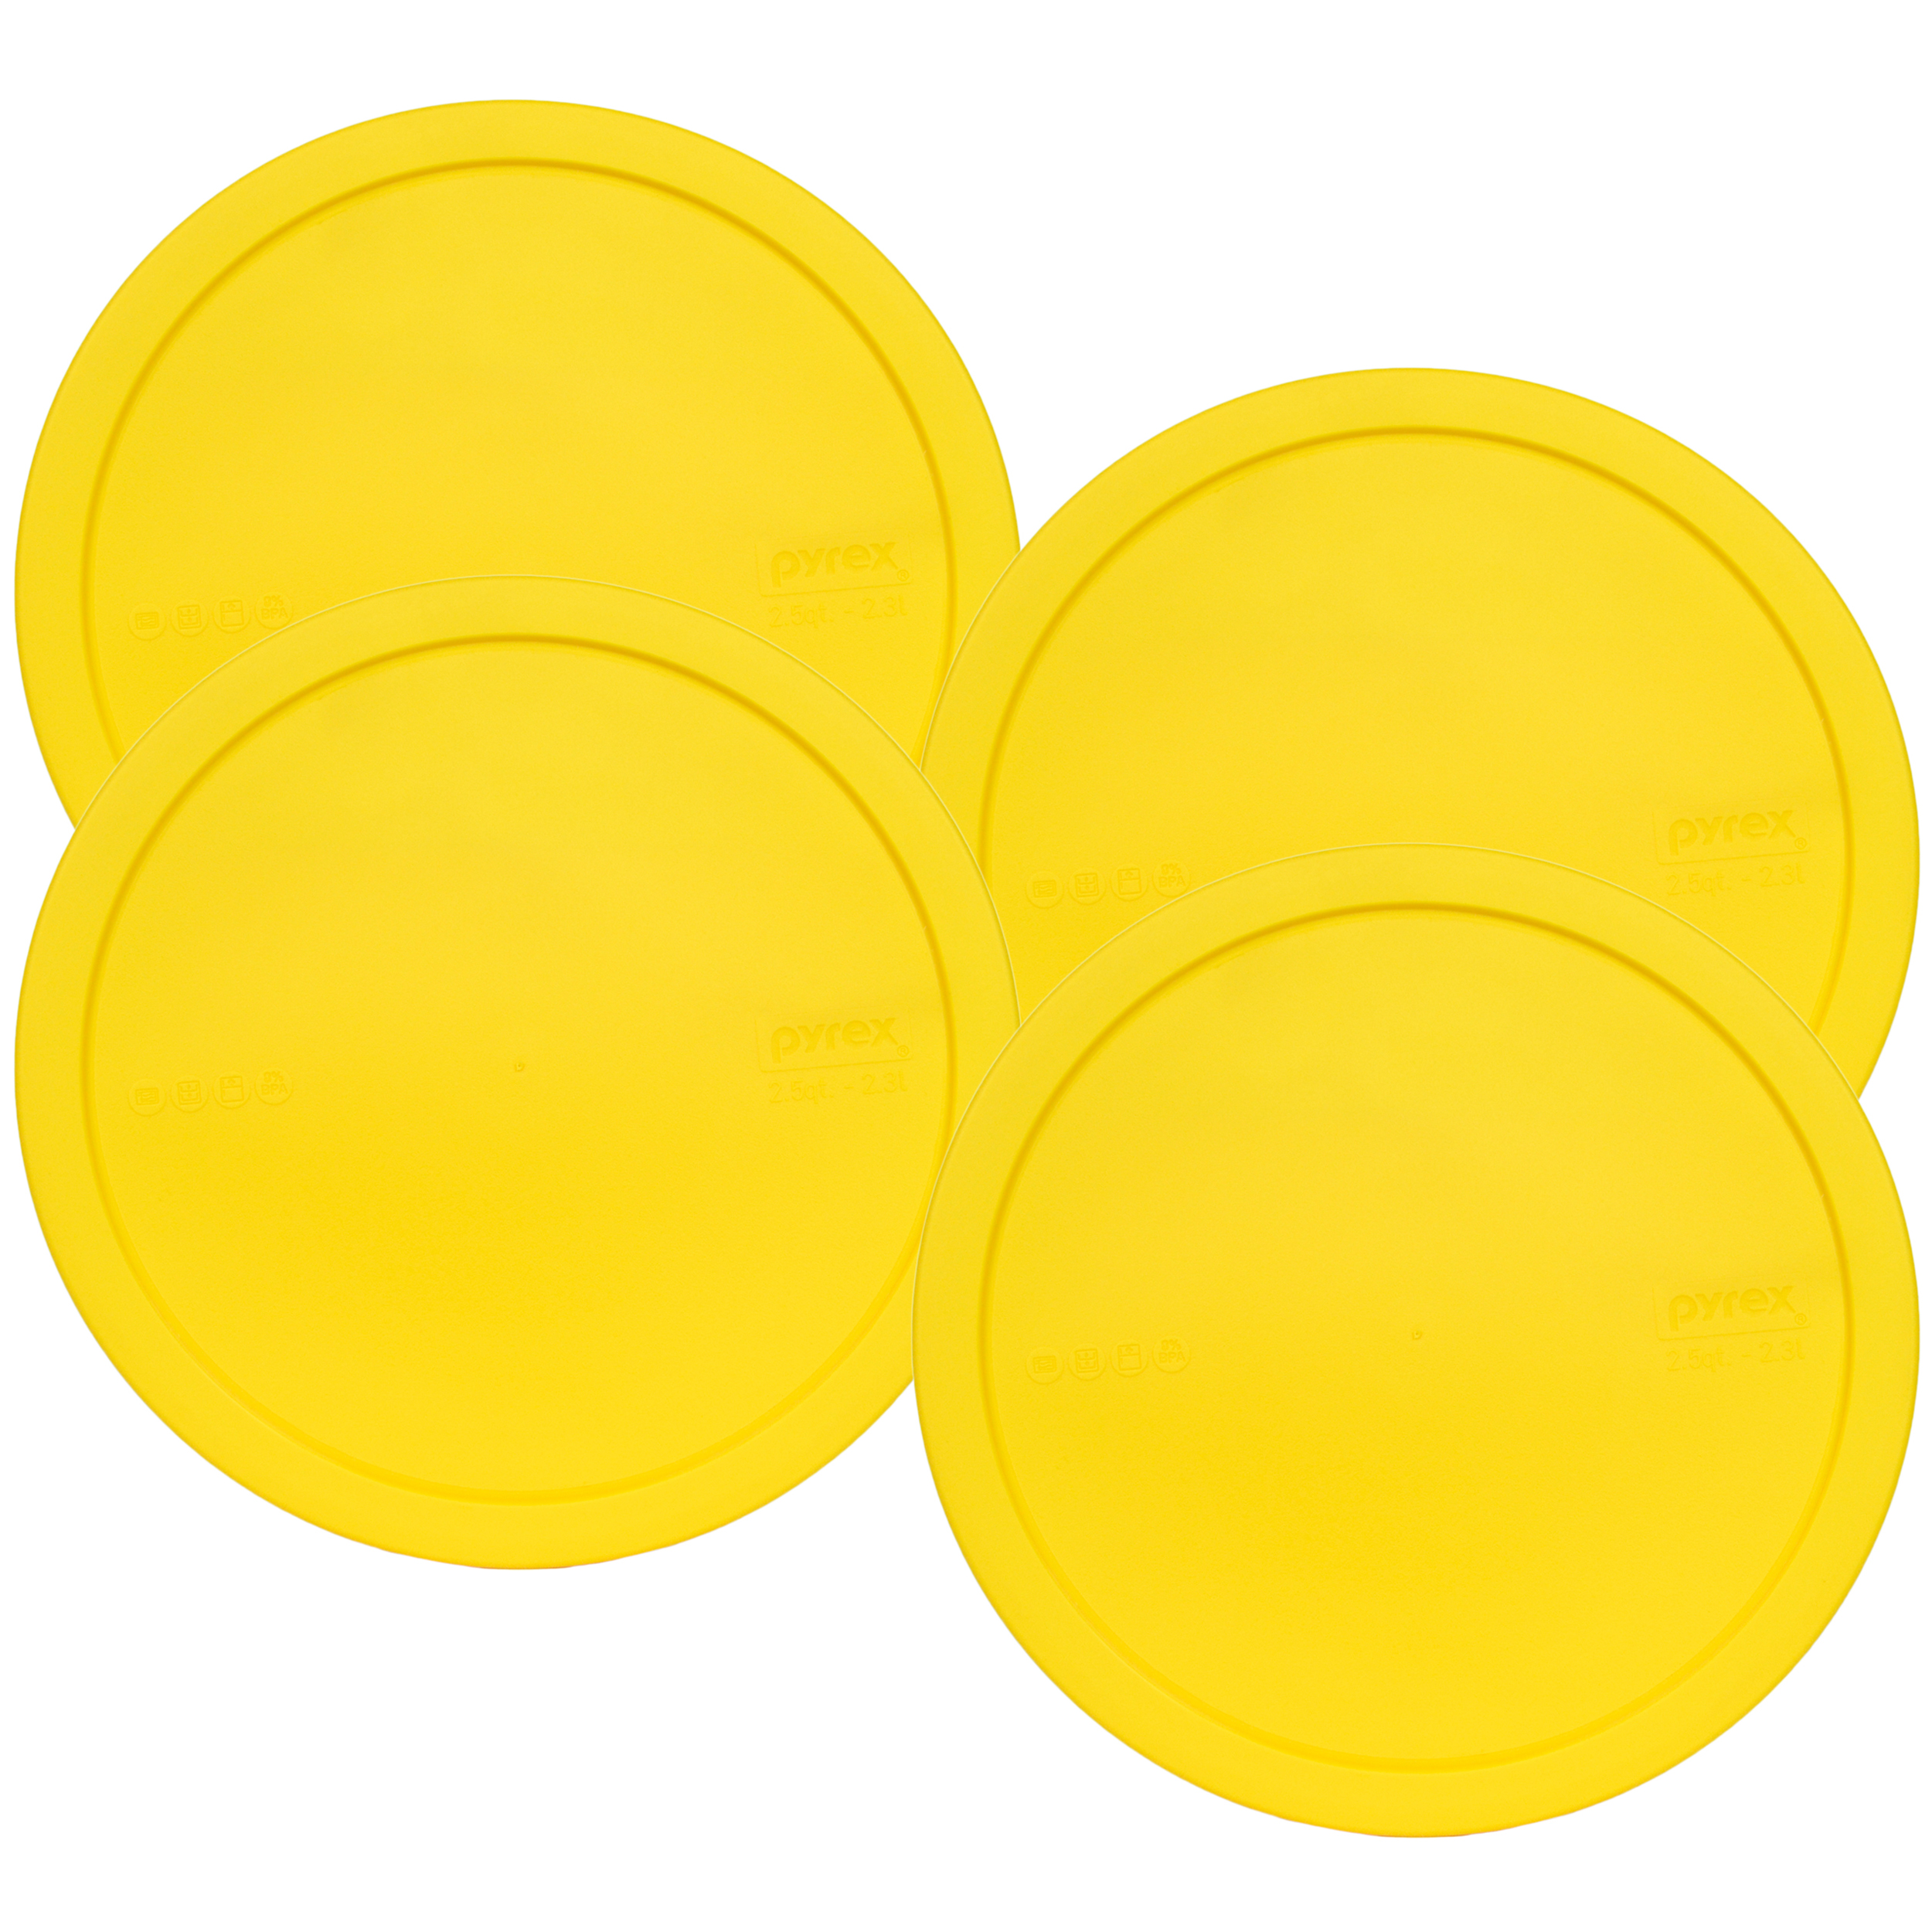 Pyrex Replacement Lid 325-PC Yellow Plastic Round Cover (4-Pack) for Pyrex 325 2.5-Qt Bowl (Sold Separately)